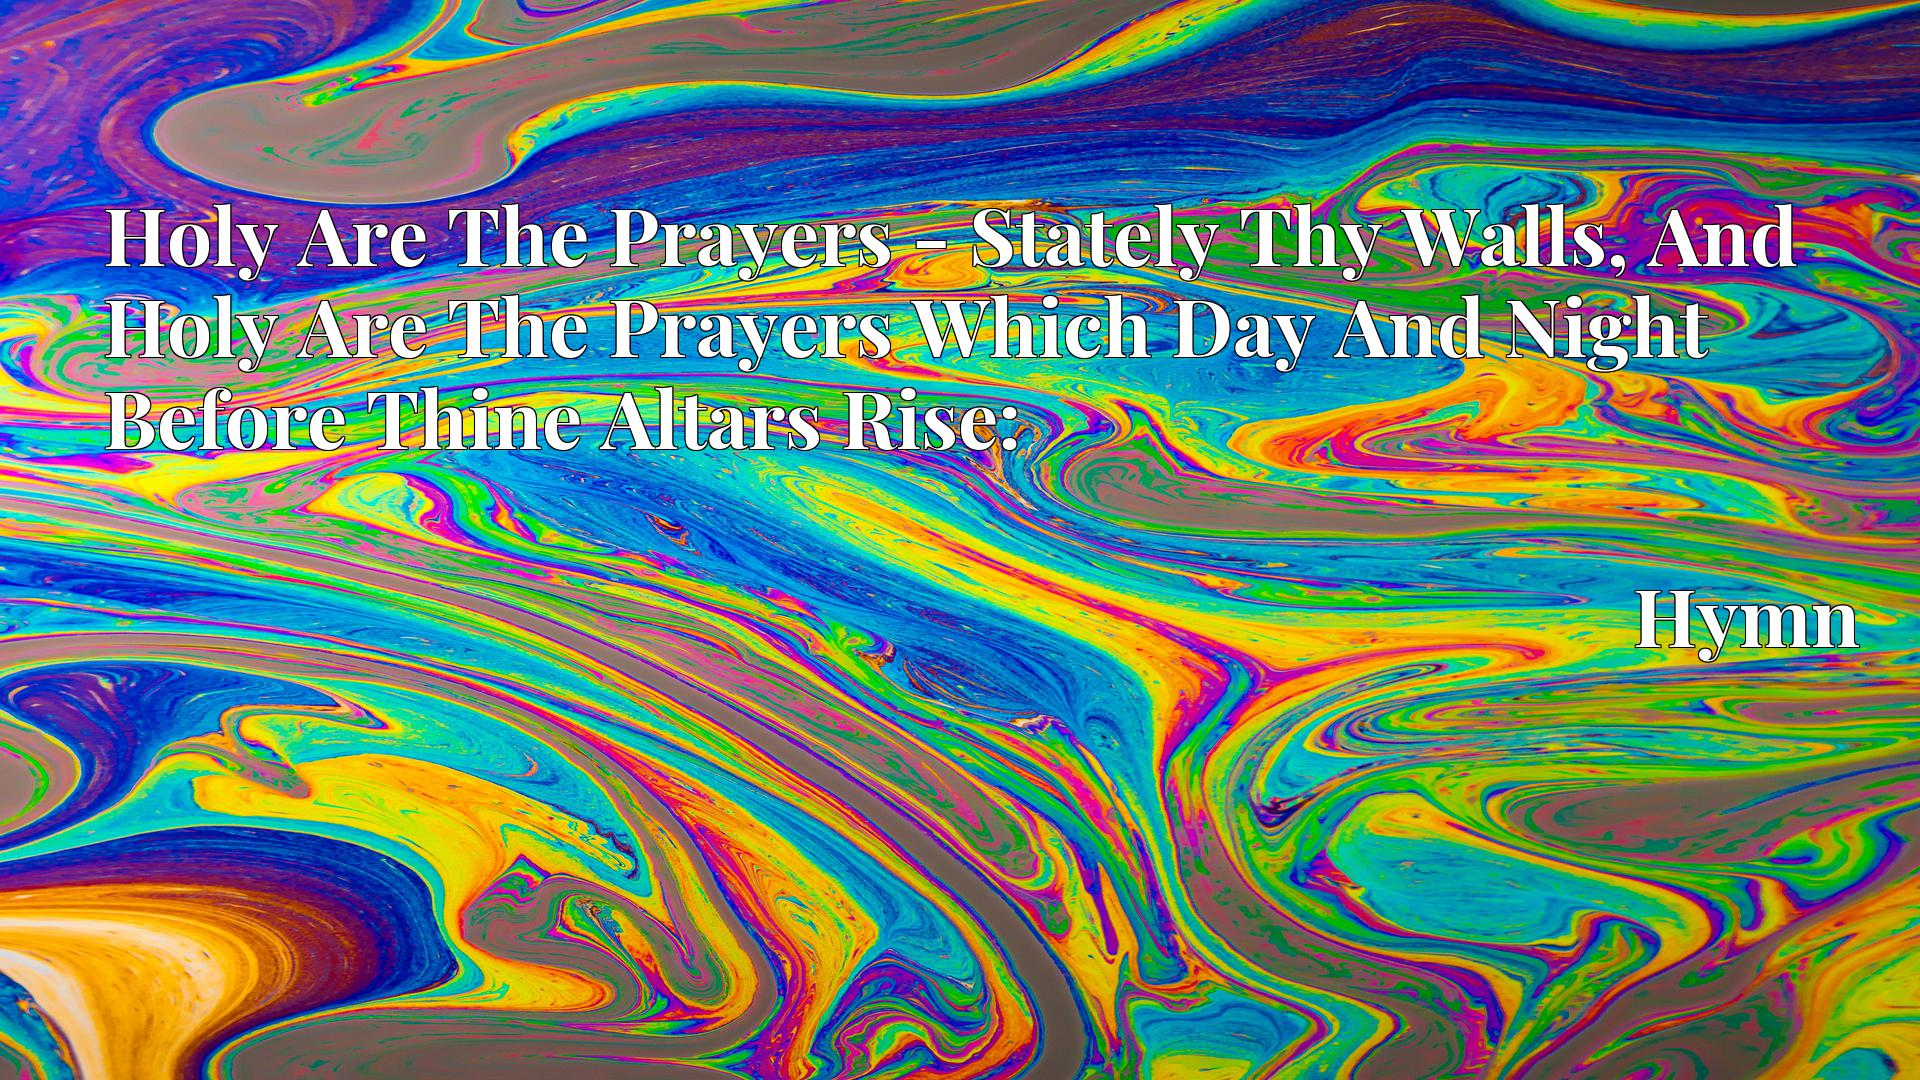 Holy Are The Prayers - Stately Thy Walls, And Holy Are The Prayers Which Day And Night Before Thine Altars Rise: - Hymn